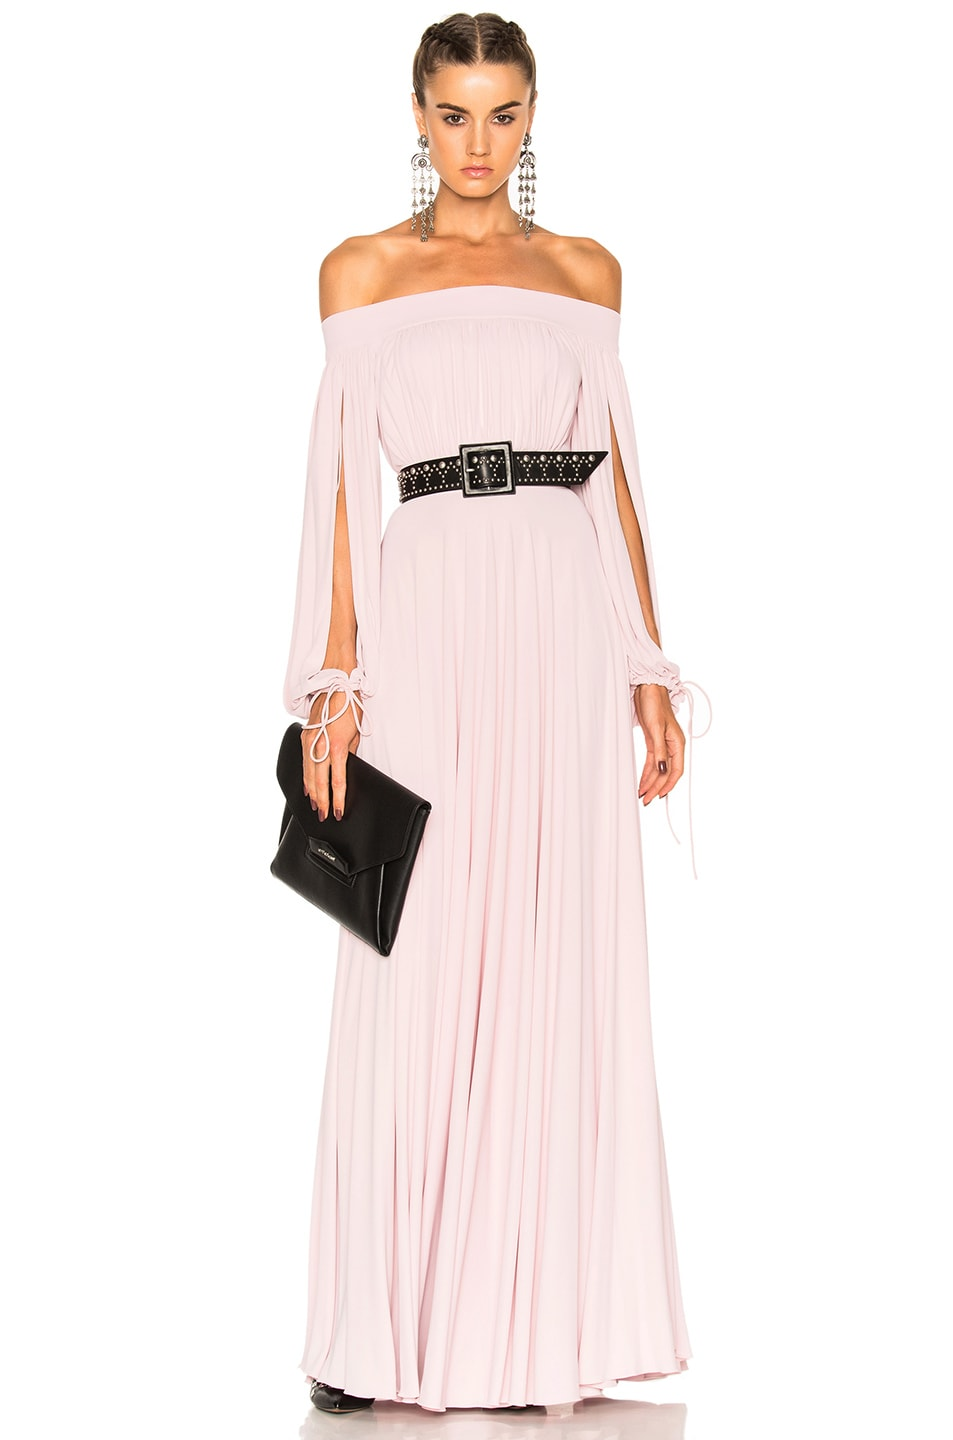 Image 1 of Alexander McQueen Sleeveless Maxi Dress in Clover